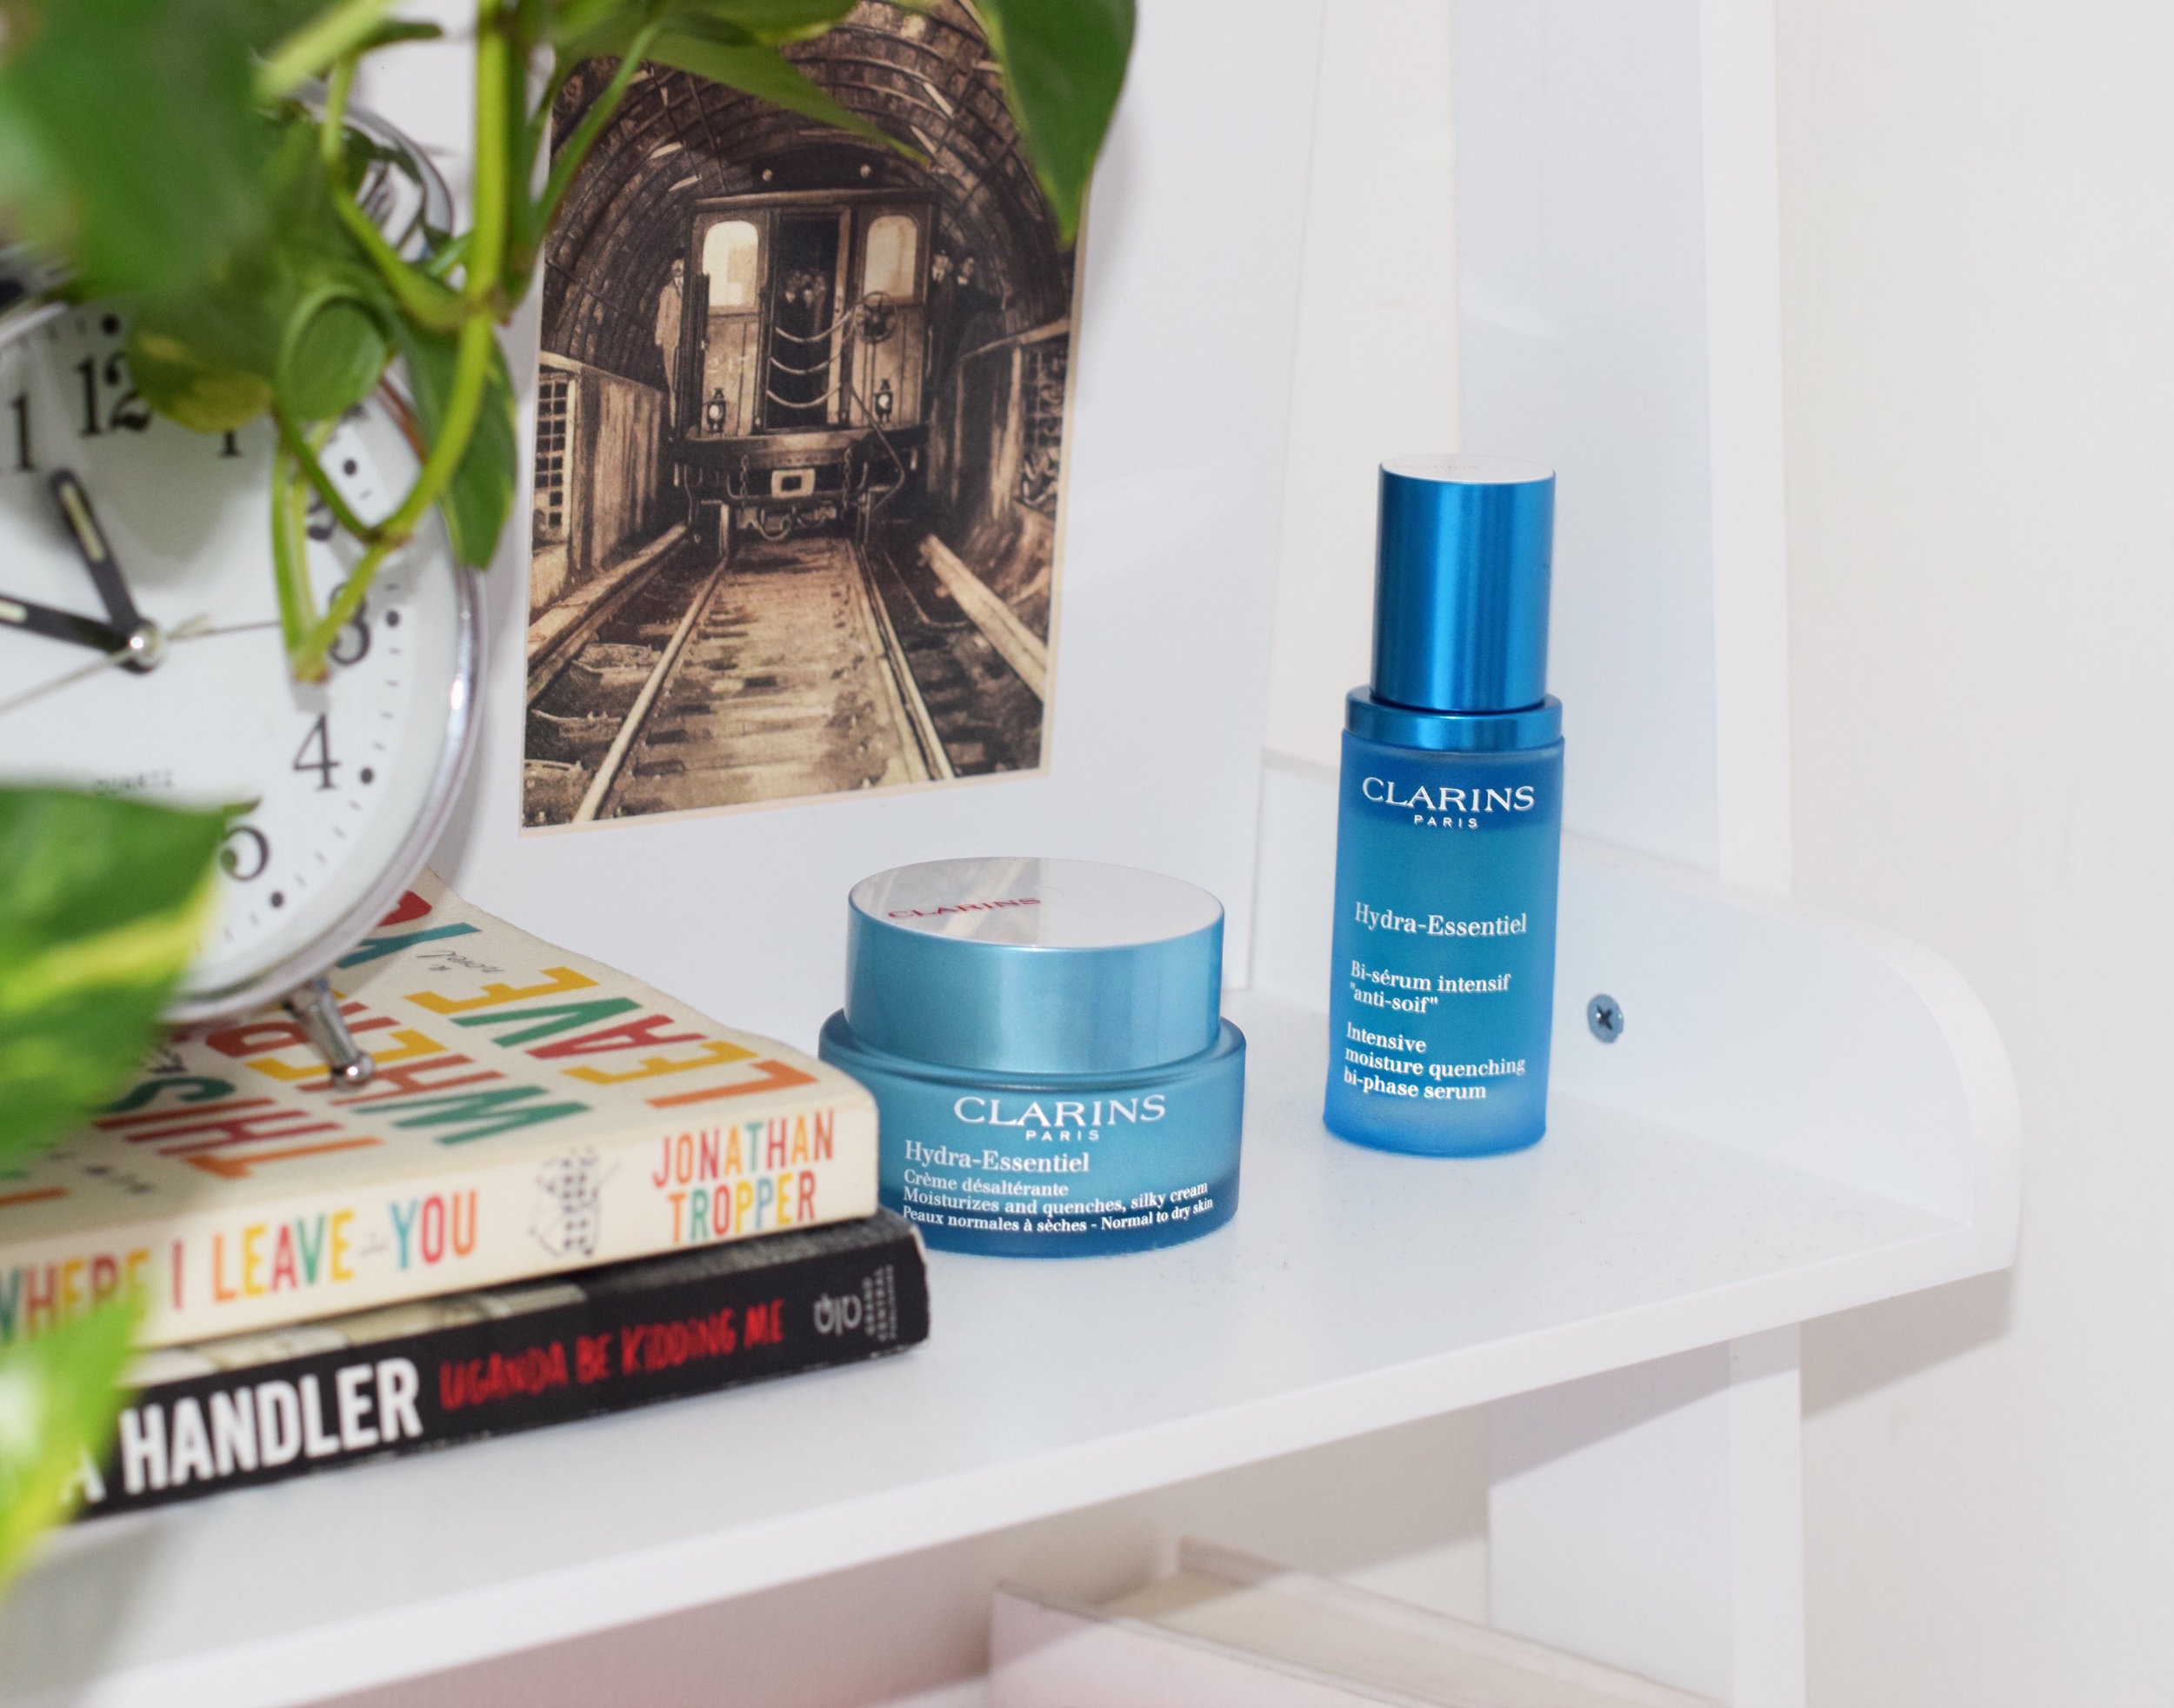 Clarins Hydra-Essentiel Bi-phase serum and moisturizer Louboutins & Love Esther Santer NYC Street Style Blogger Beauty Product Review Skin Routine Blue Packaging Shop Buy Lotion Girl Women  Skincare Sephora Macys Lord & Taylor.JPG